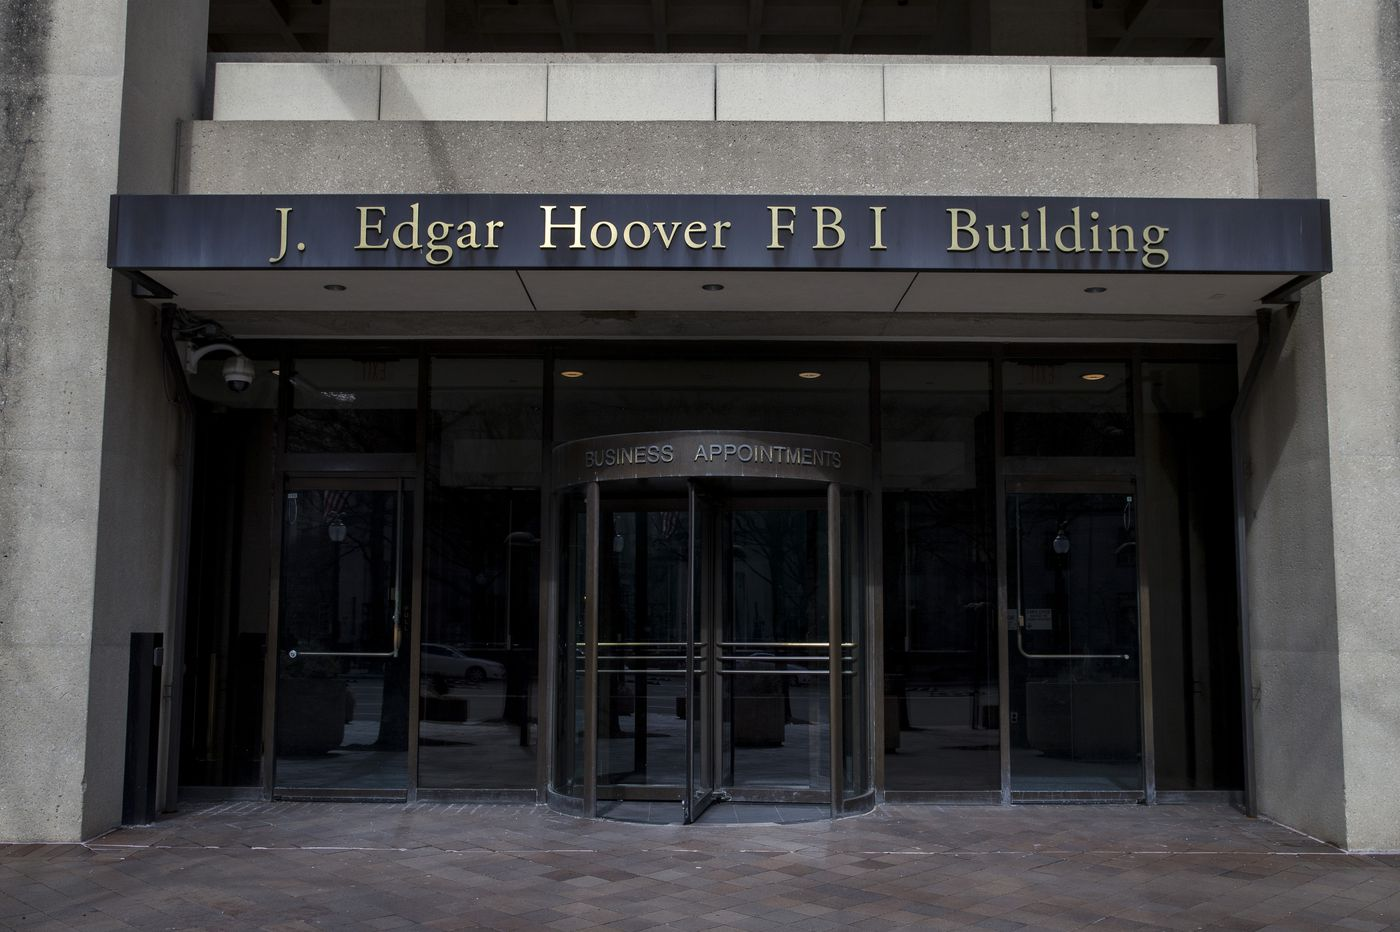 j edgar hoover sex life in High Point